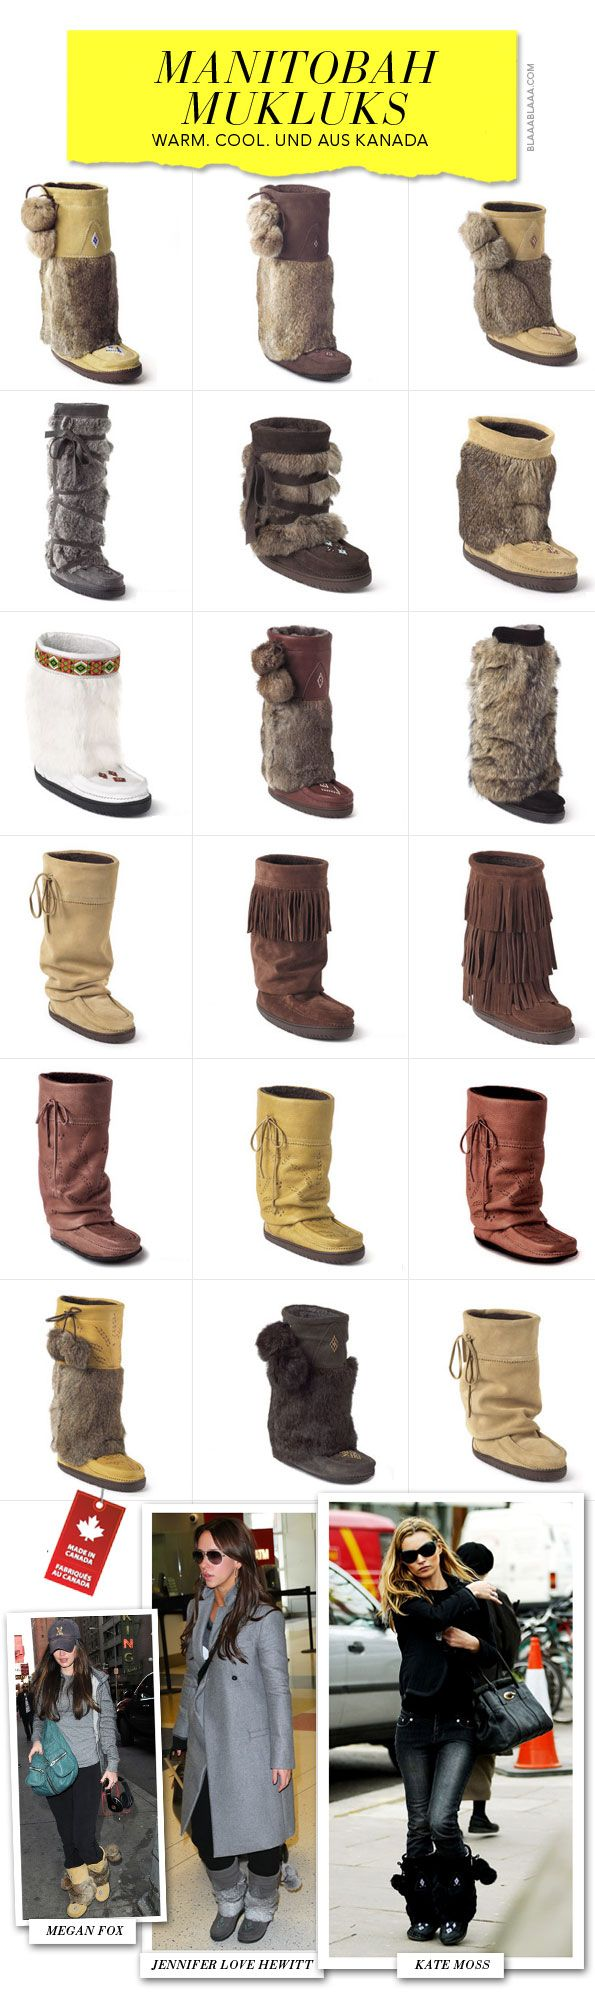 Manitobah Mukluks>> and I really need a damn logically valid reason to buy this mukluk, want it soooo much